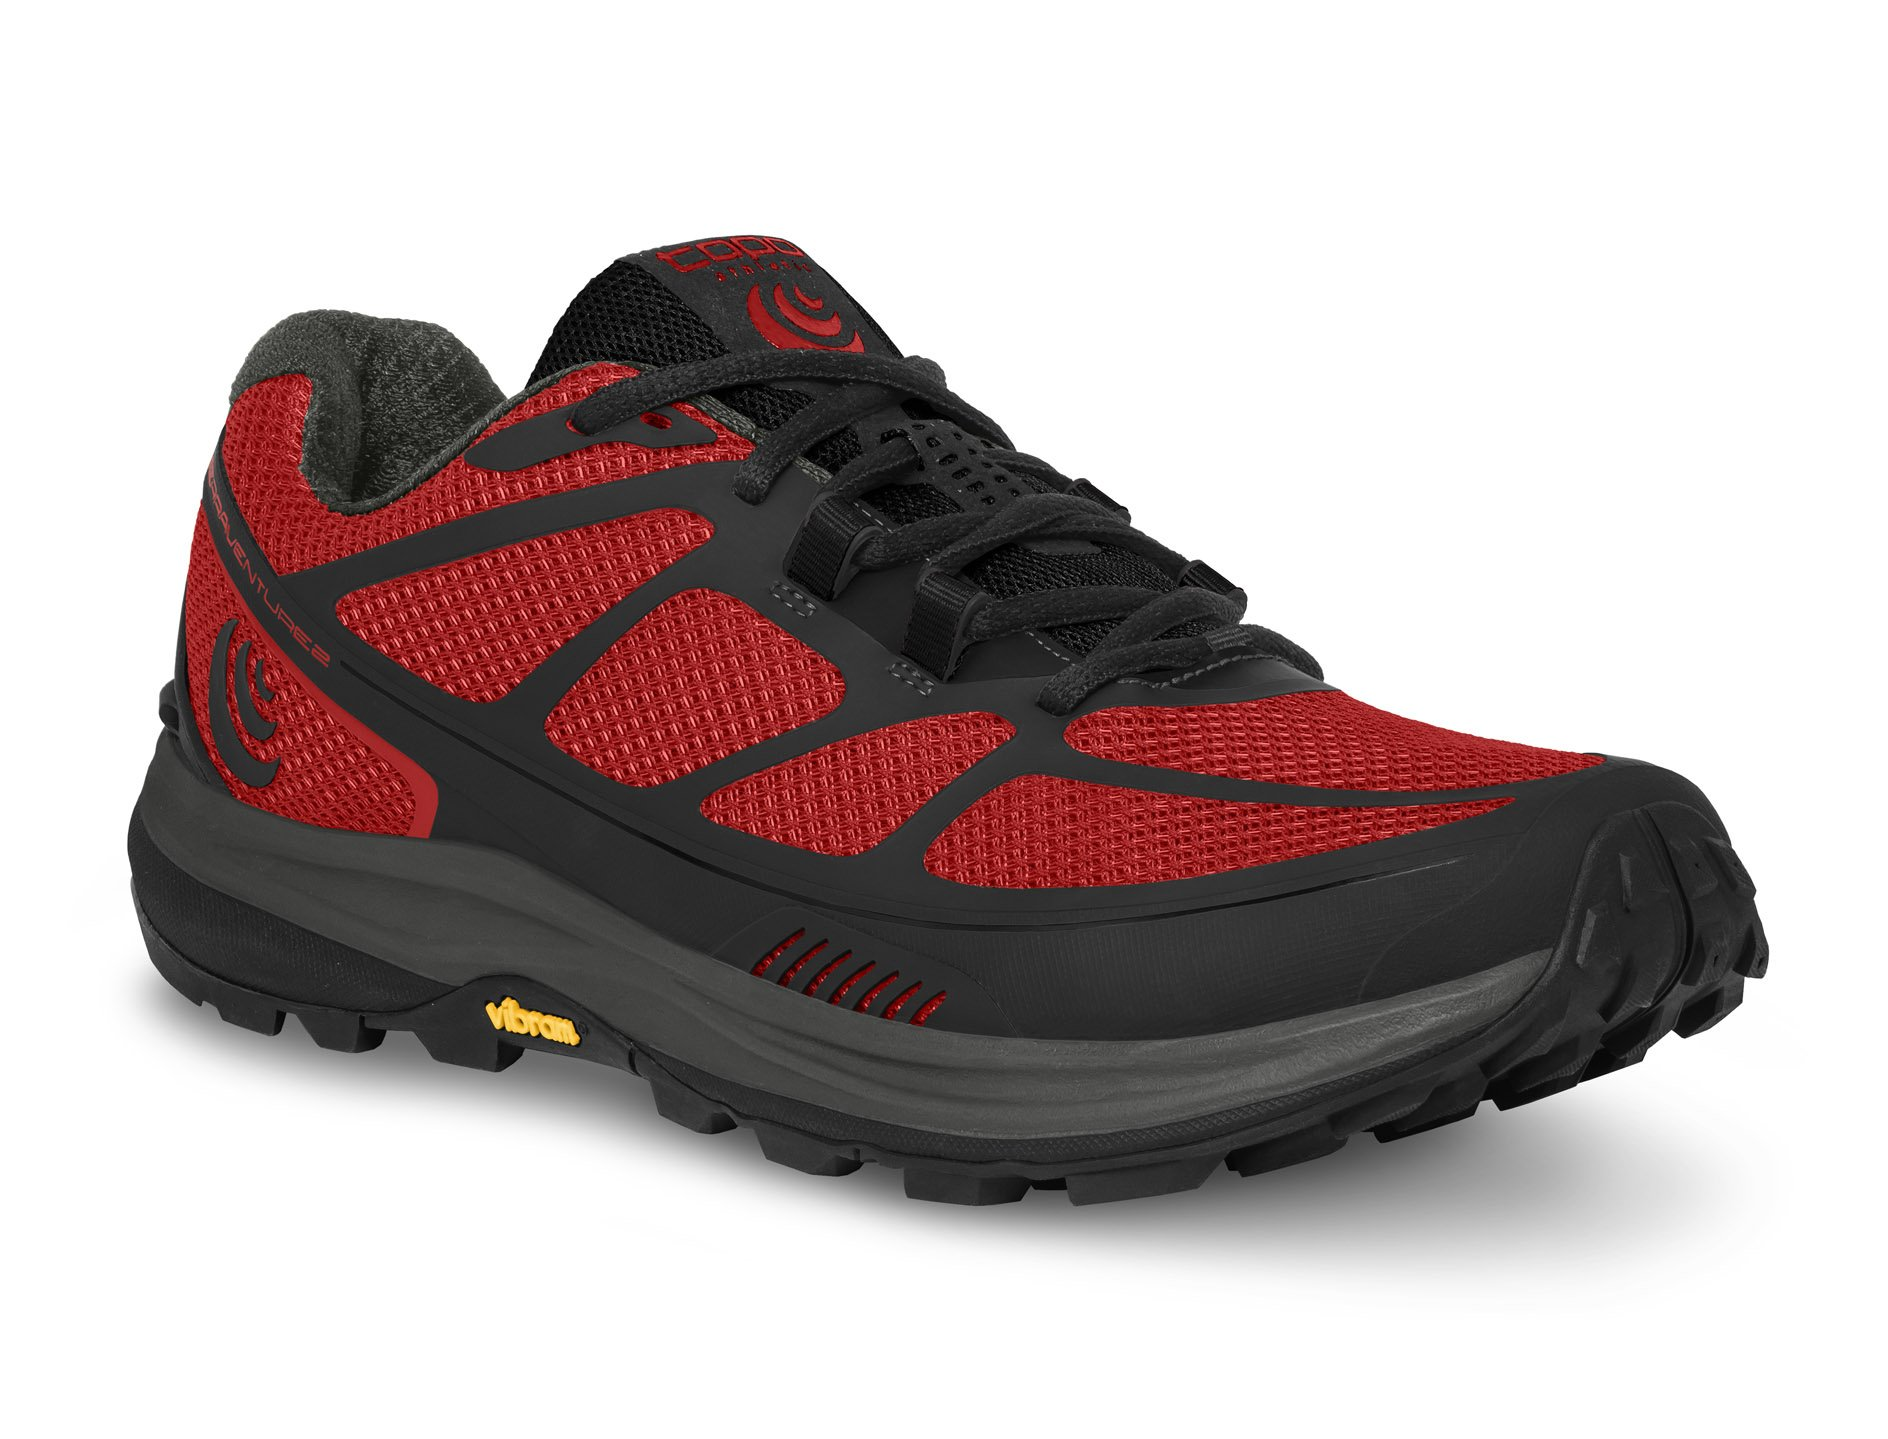 Topo Terravanture 2 Men's Trail Runner